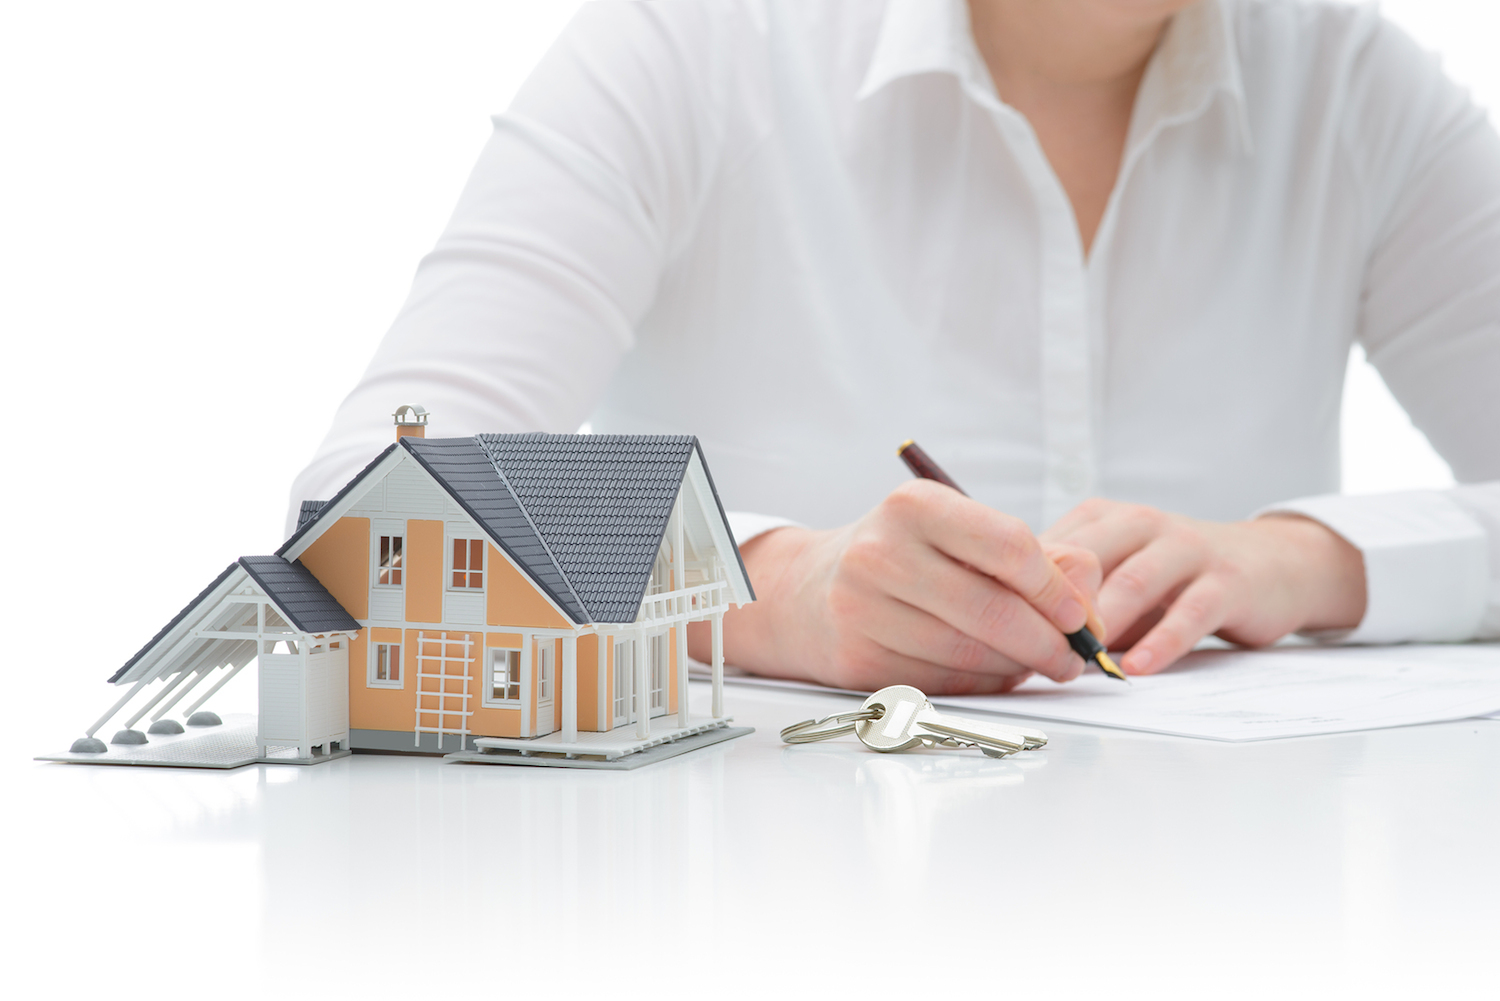 About Writing a Real Estate Blog